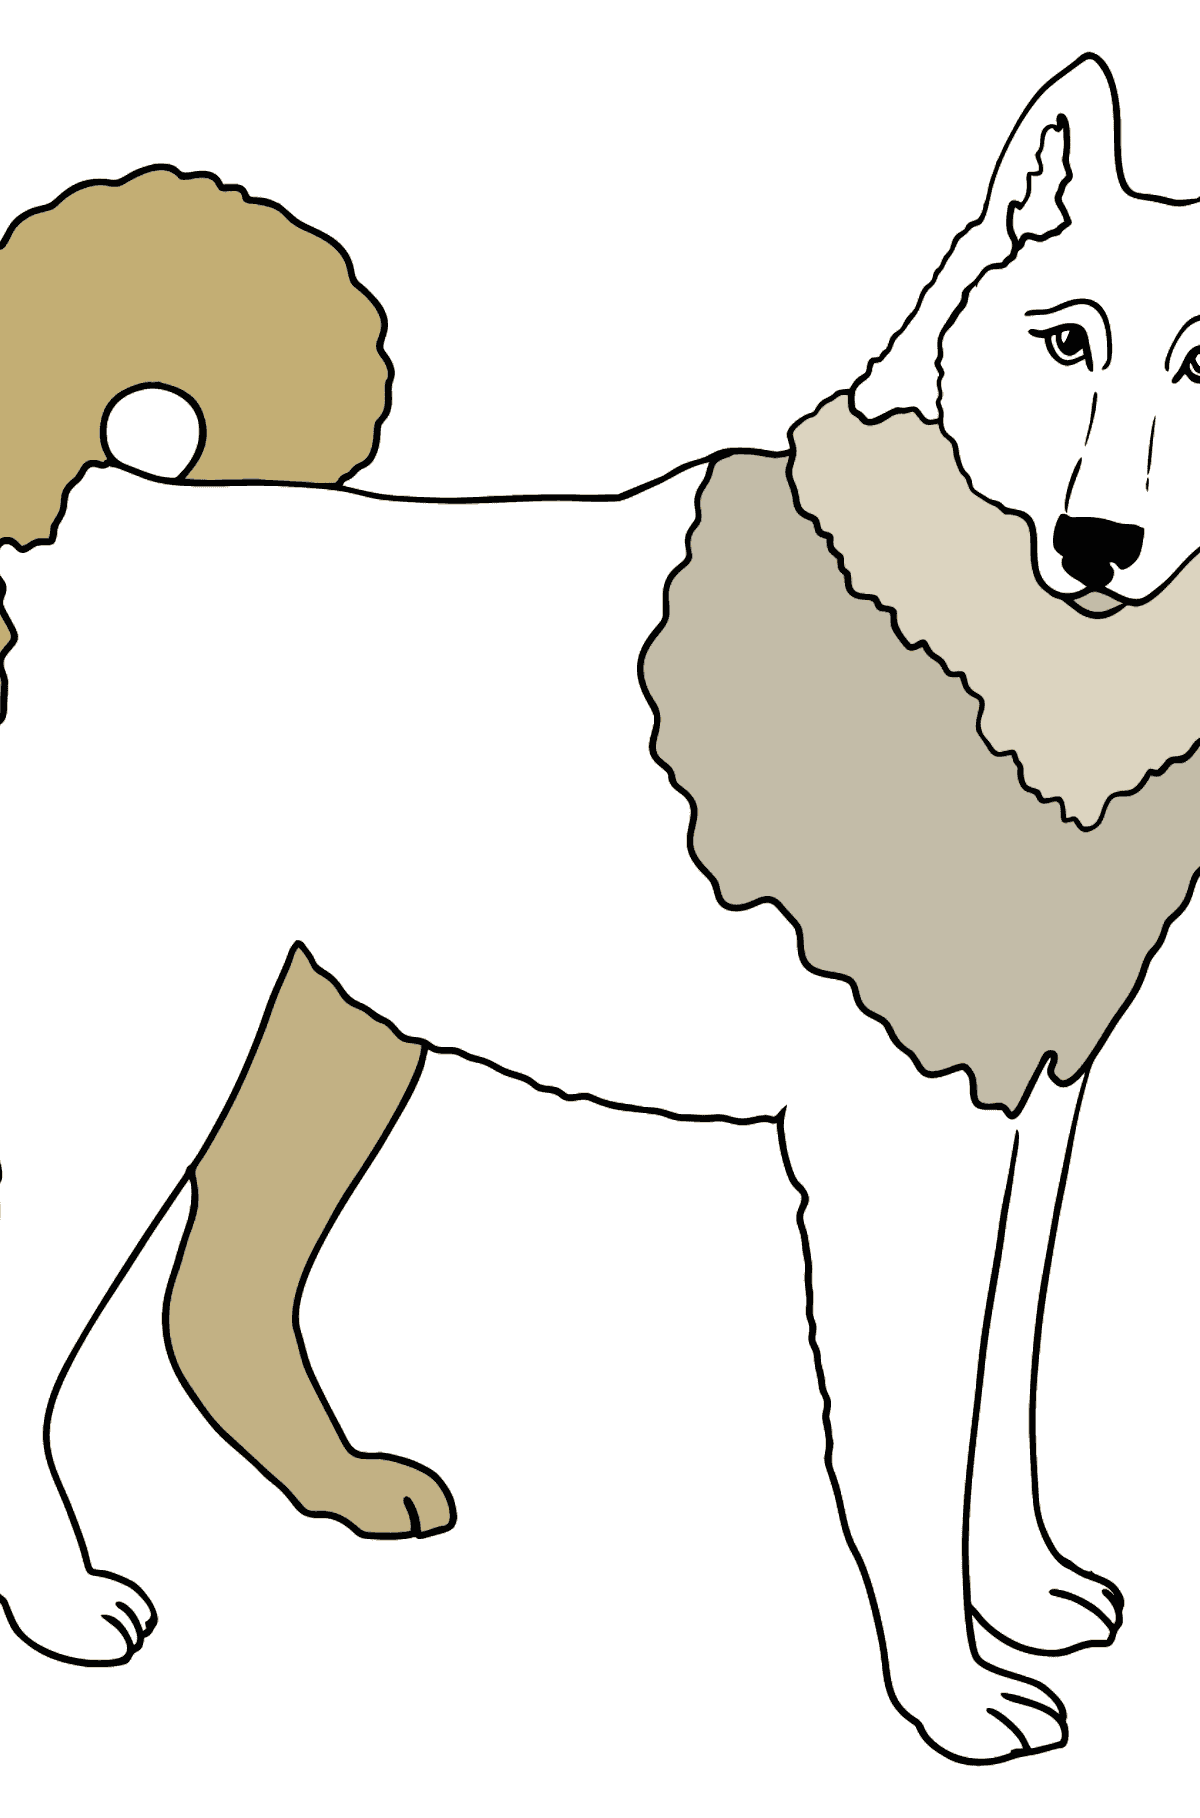 Siberian Husky coloring page - Coloring Pages for Kids